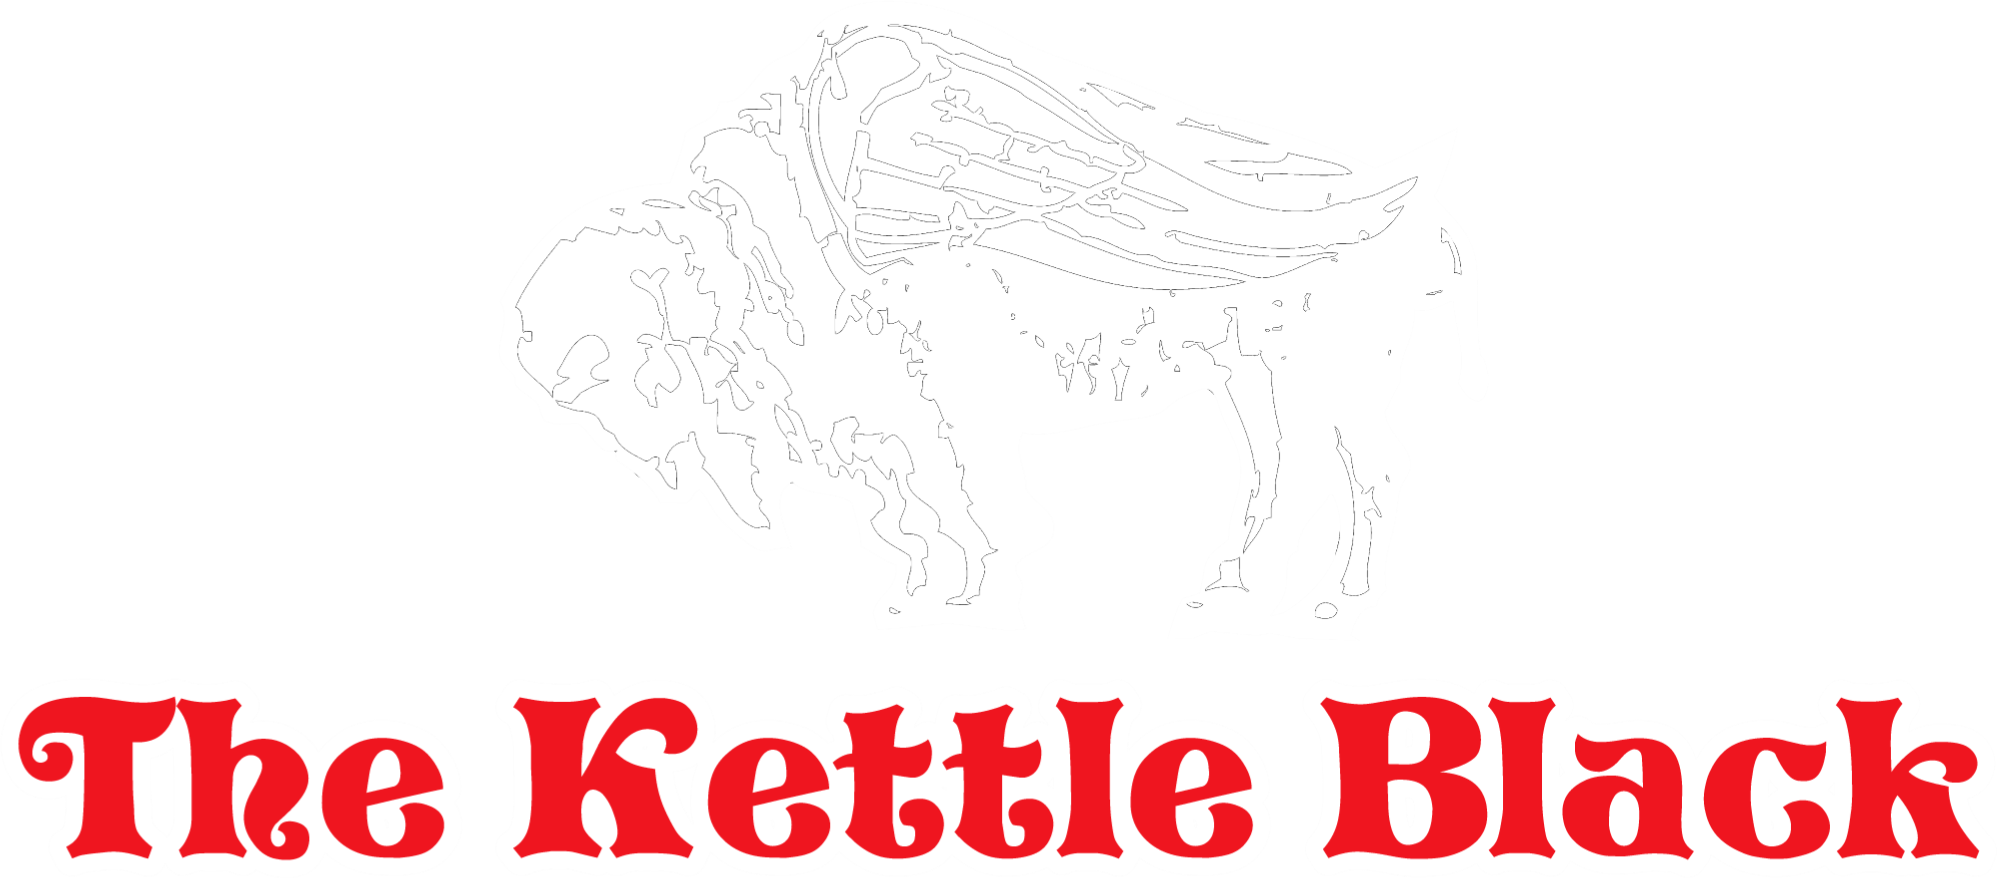 Kettle Black Buffalo